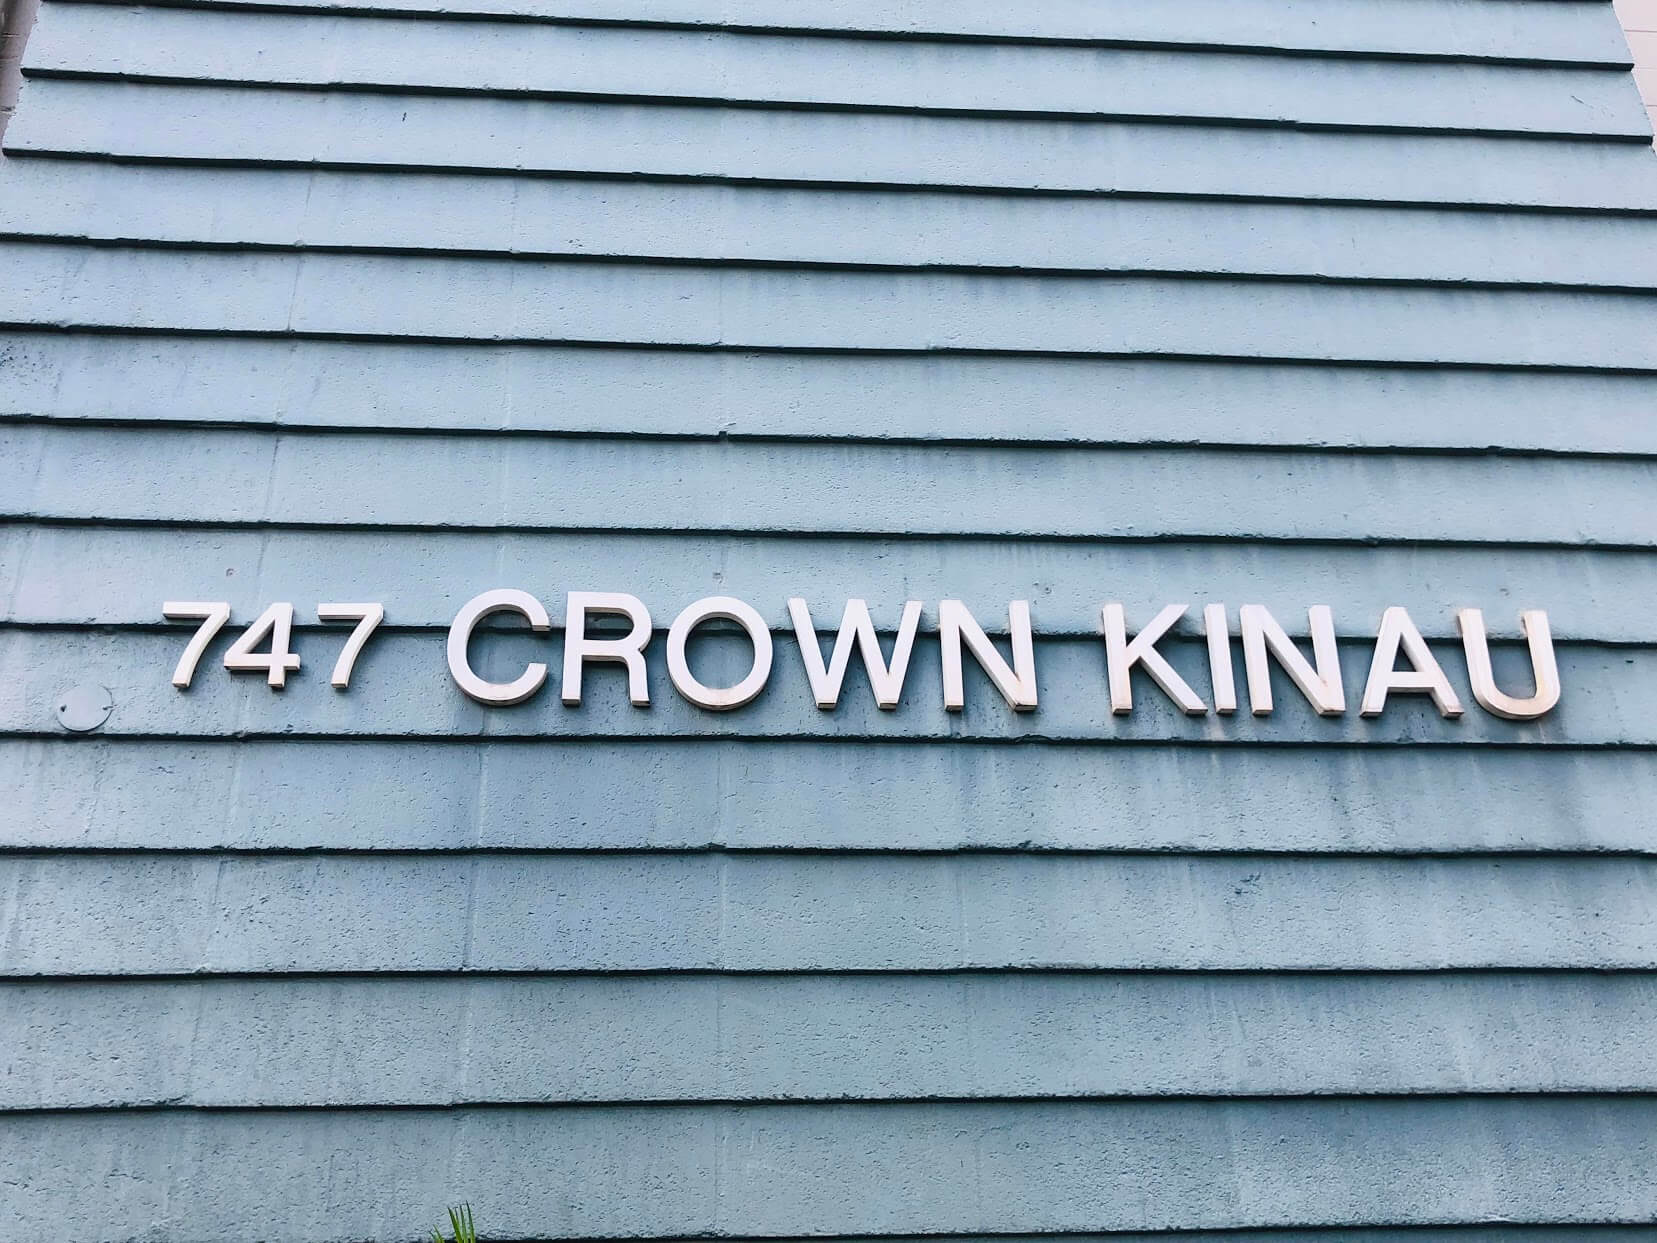 Crown Kinauの看板